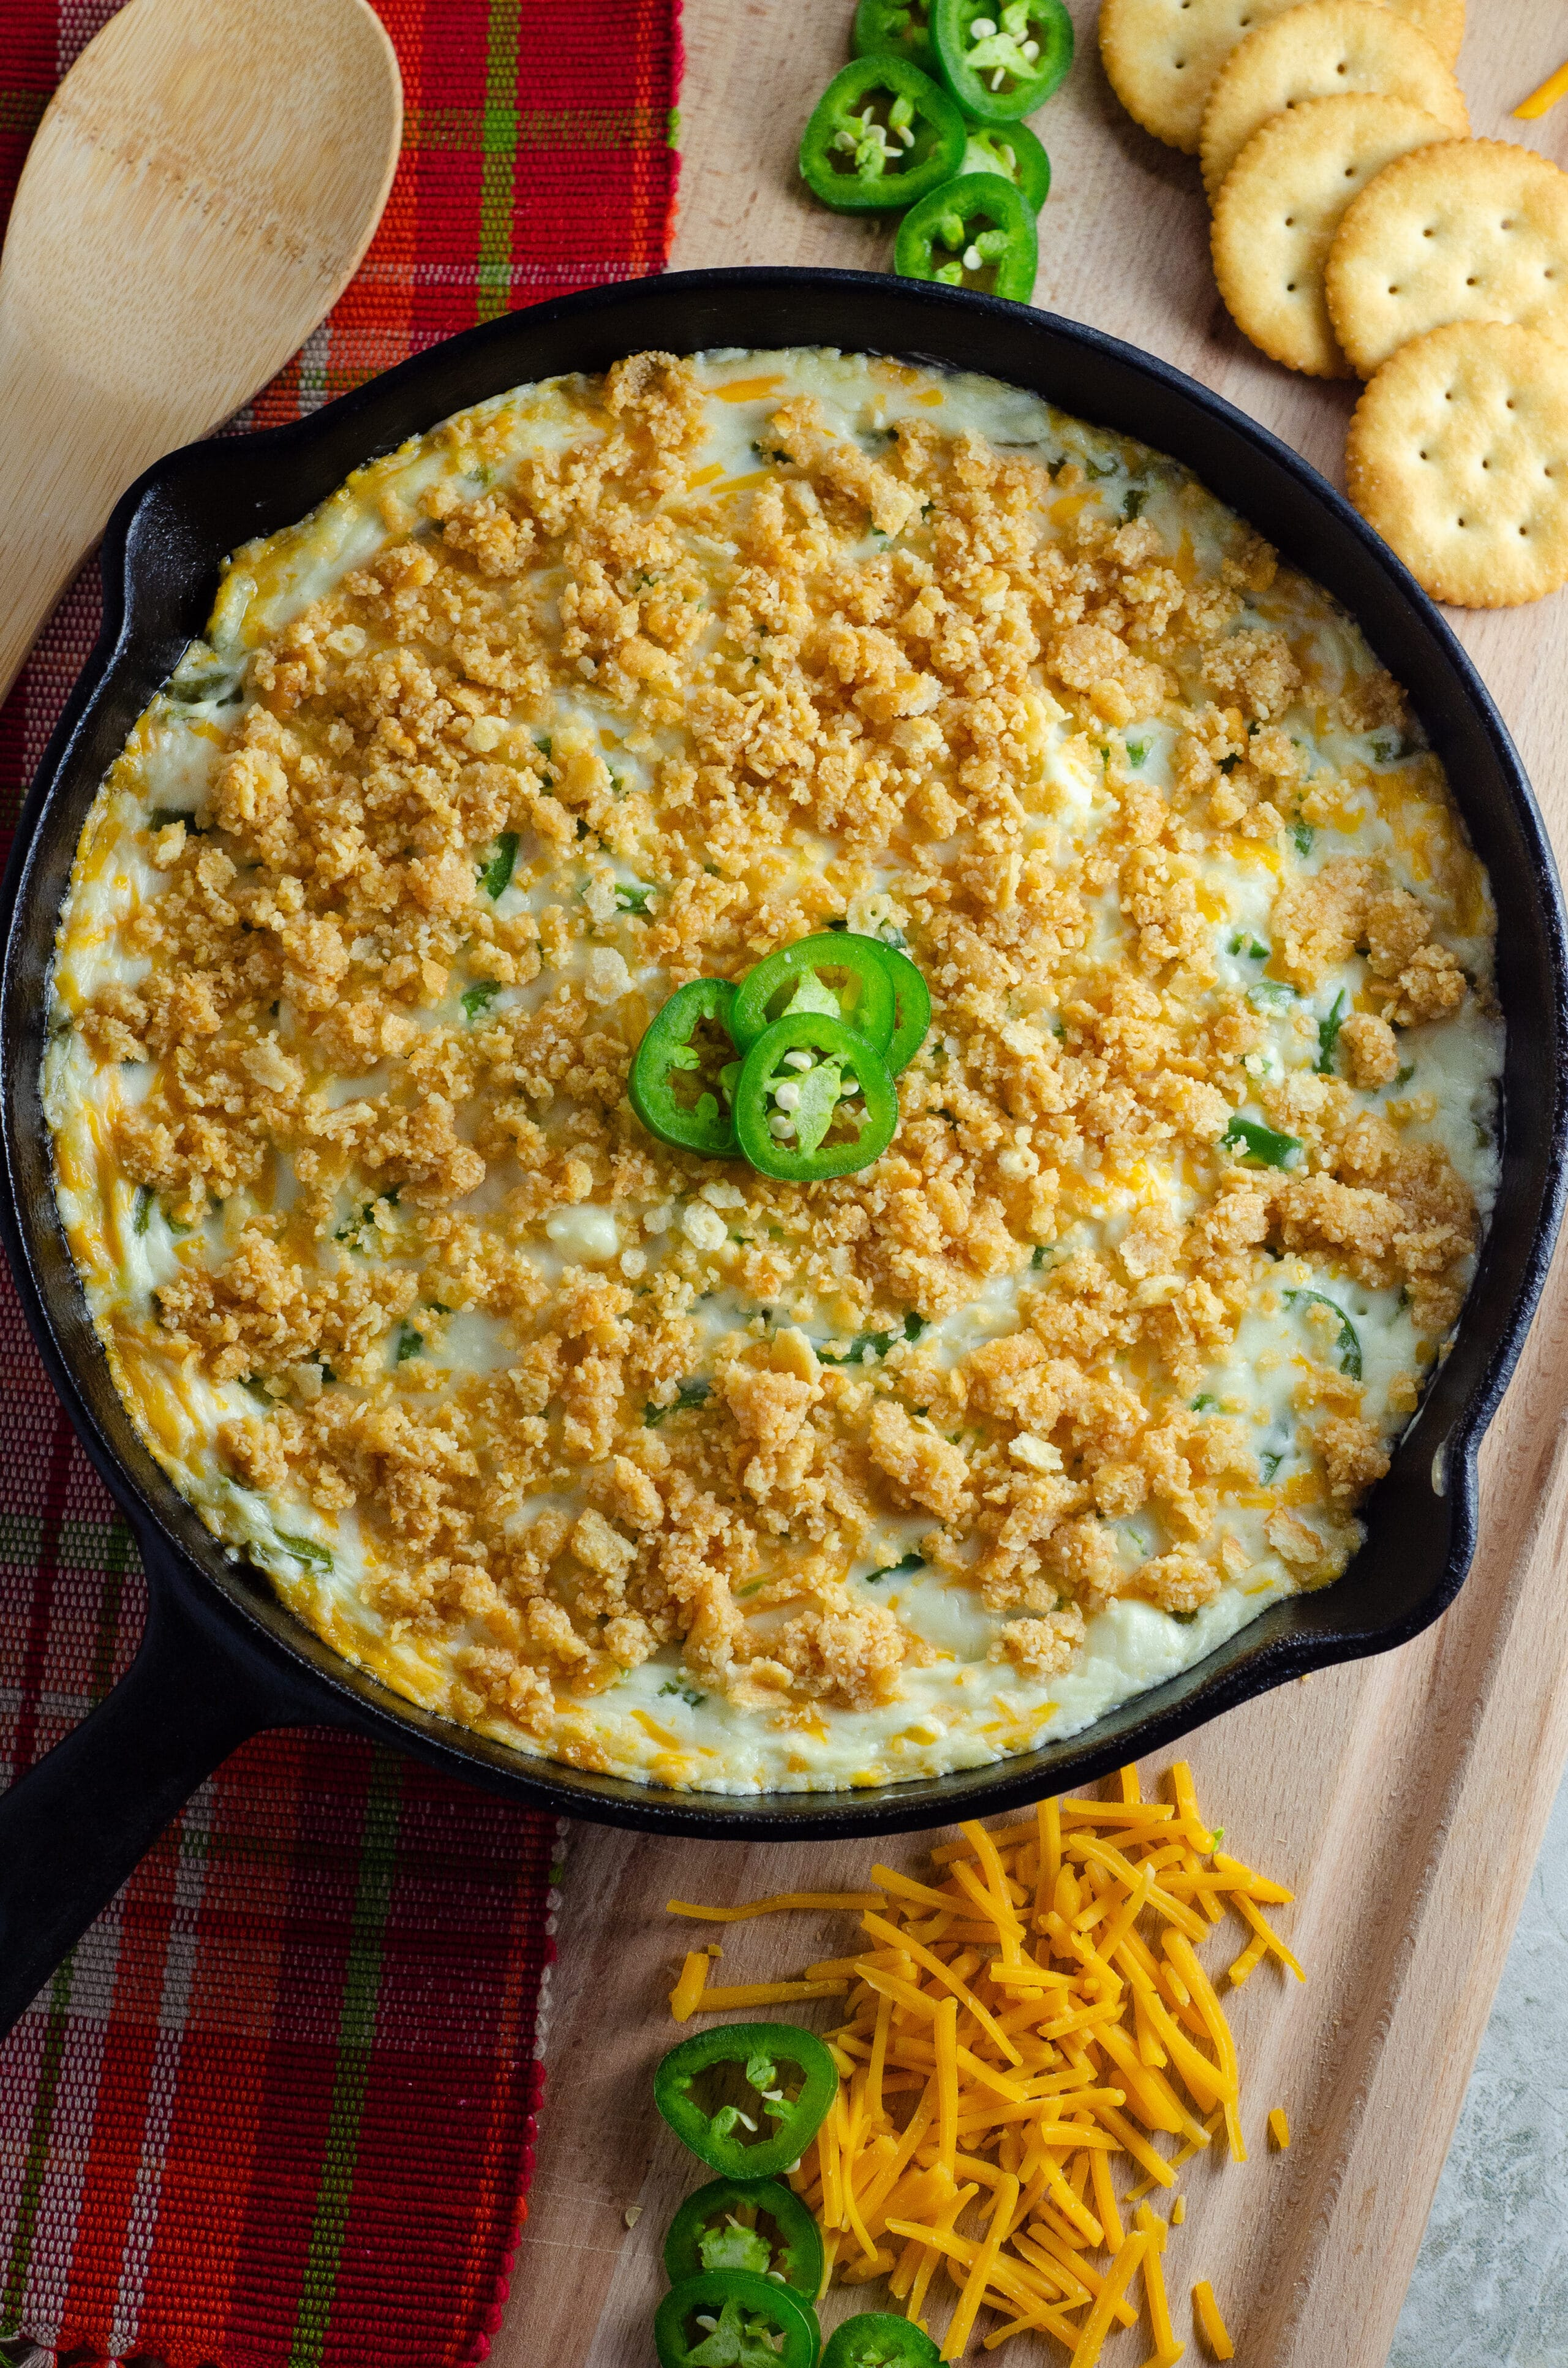 Jalapeño Popper Dip. Elevate your holiday entertaining with some wholesome, flavorful California cheeses in this easy to make Jalapeño Popper Dip.